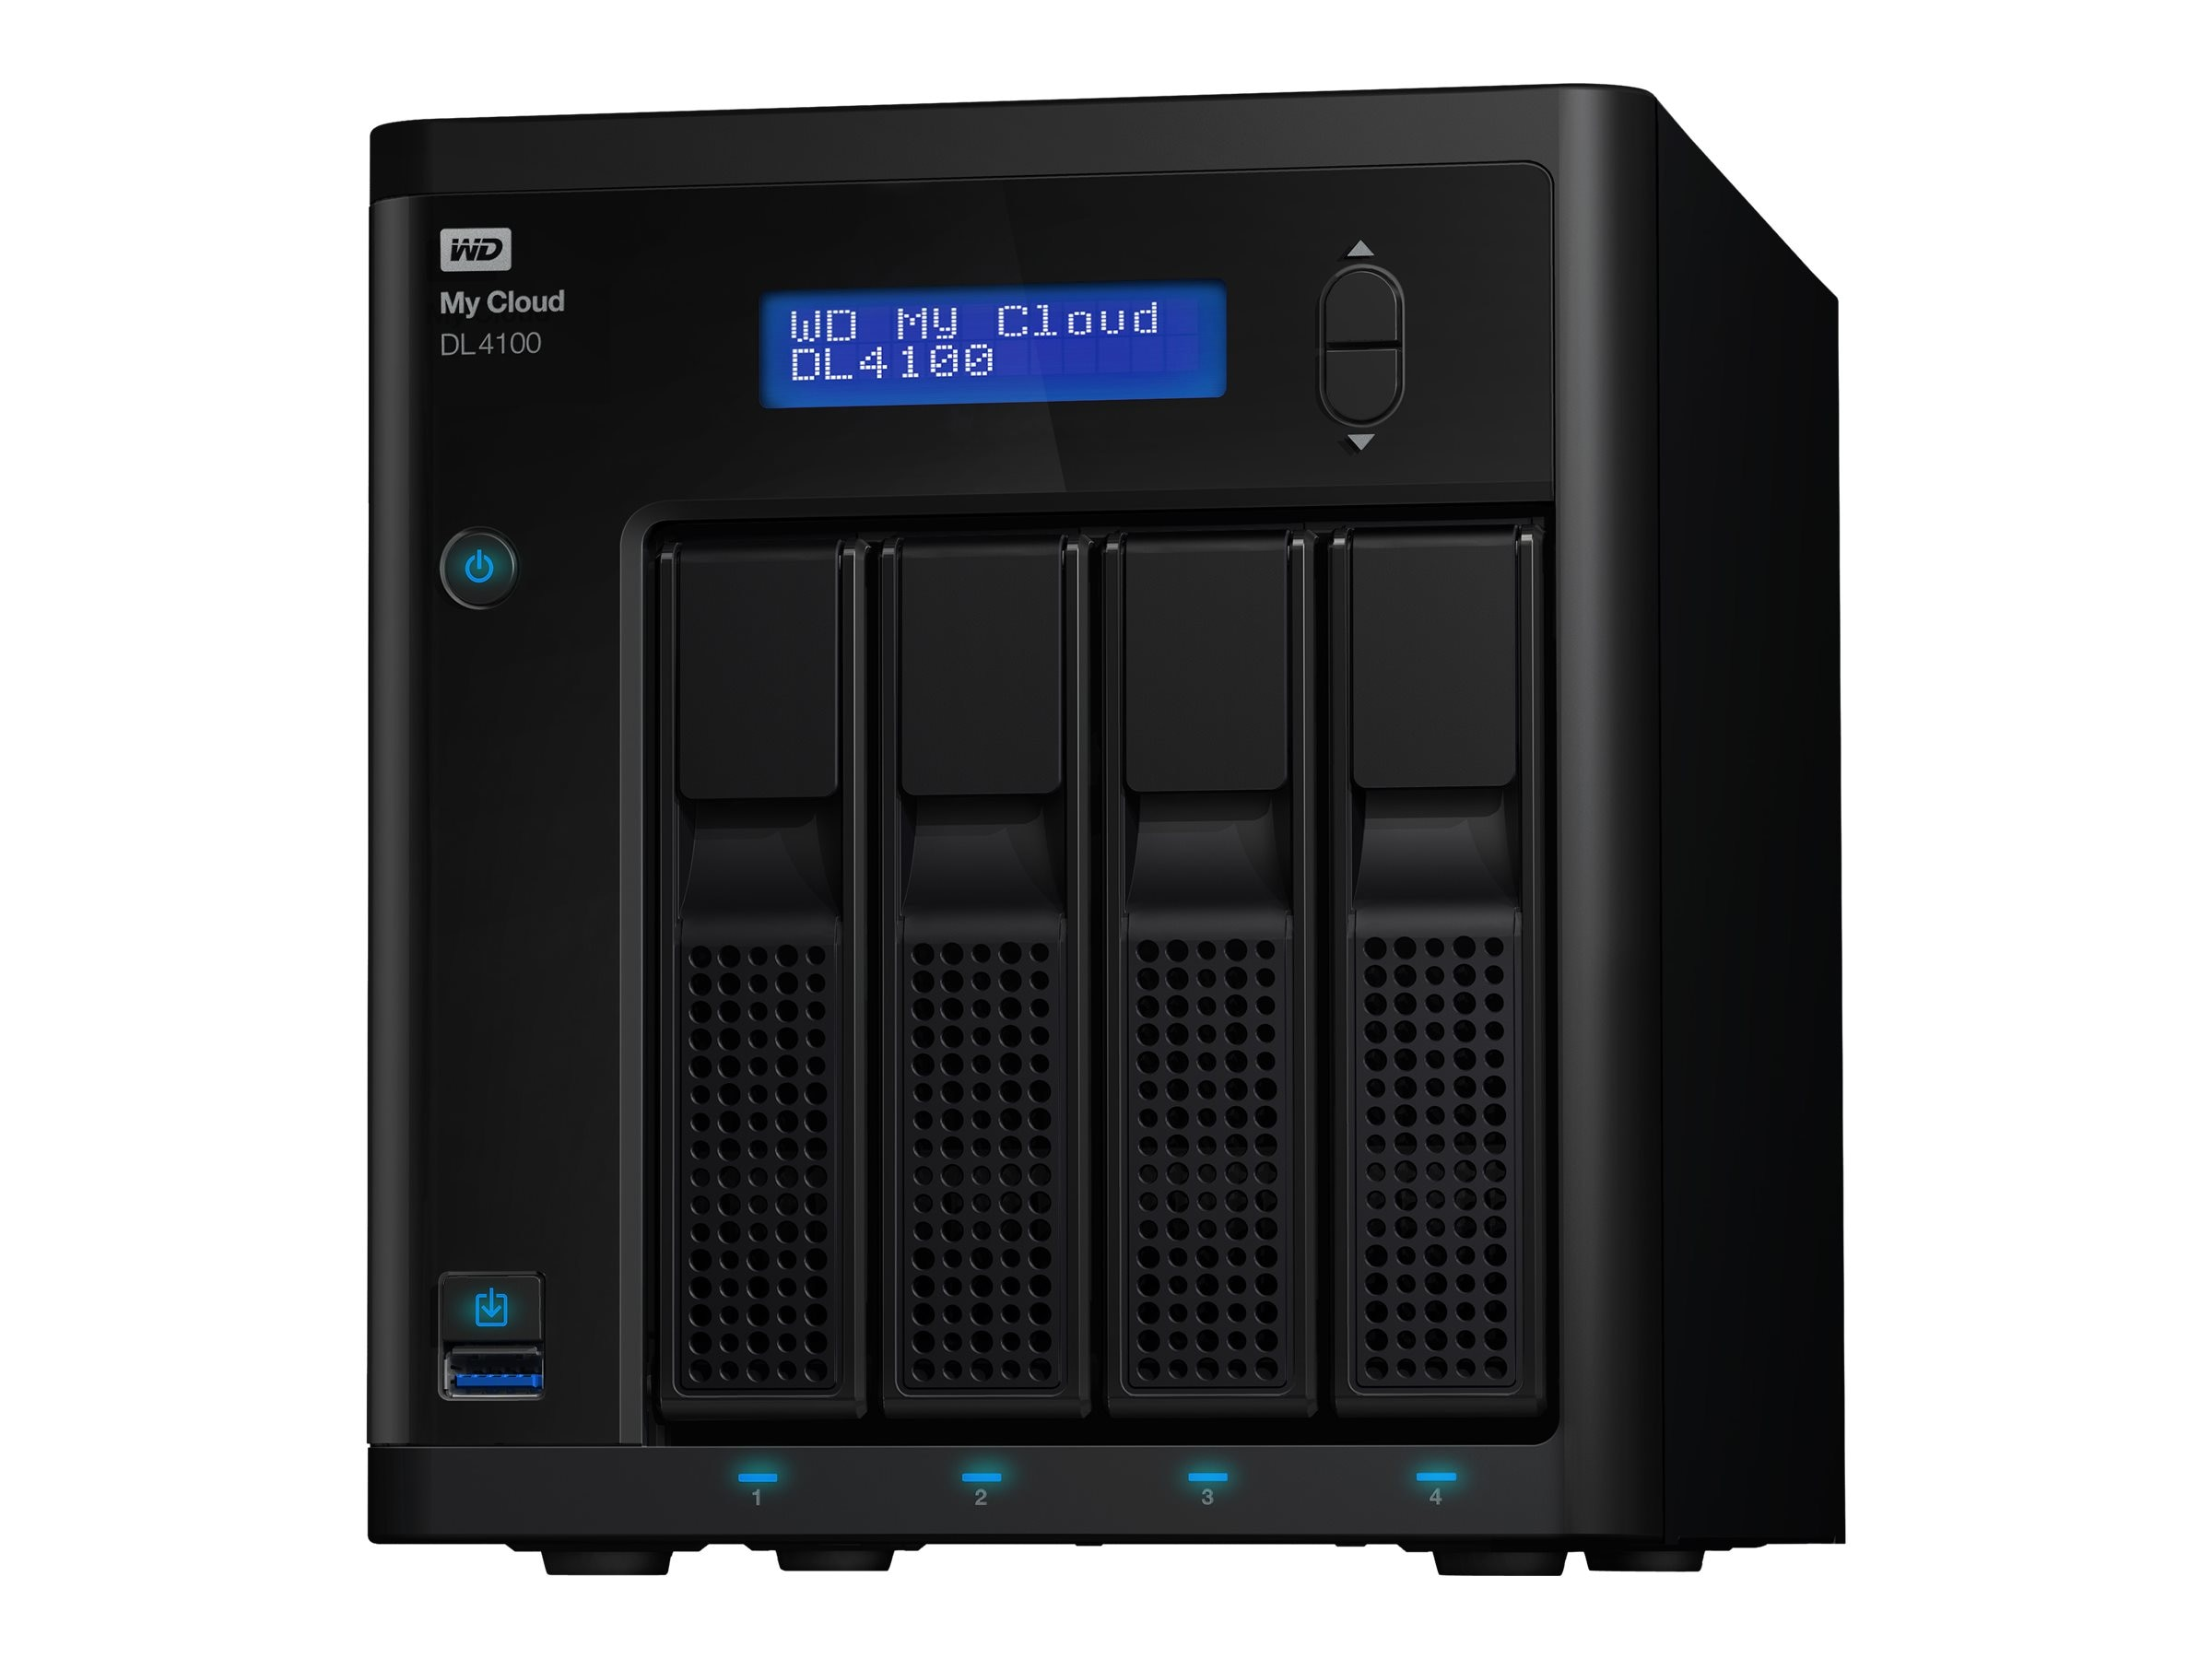 WD 24TB My Cloud DL4100 Network Attached Storage, WDBNEZ0240KBK-NESN, 18442780, Network Attached Storage